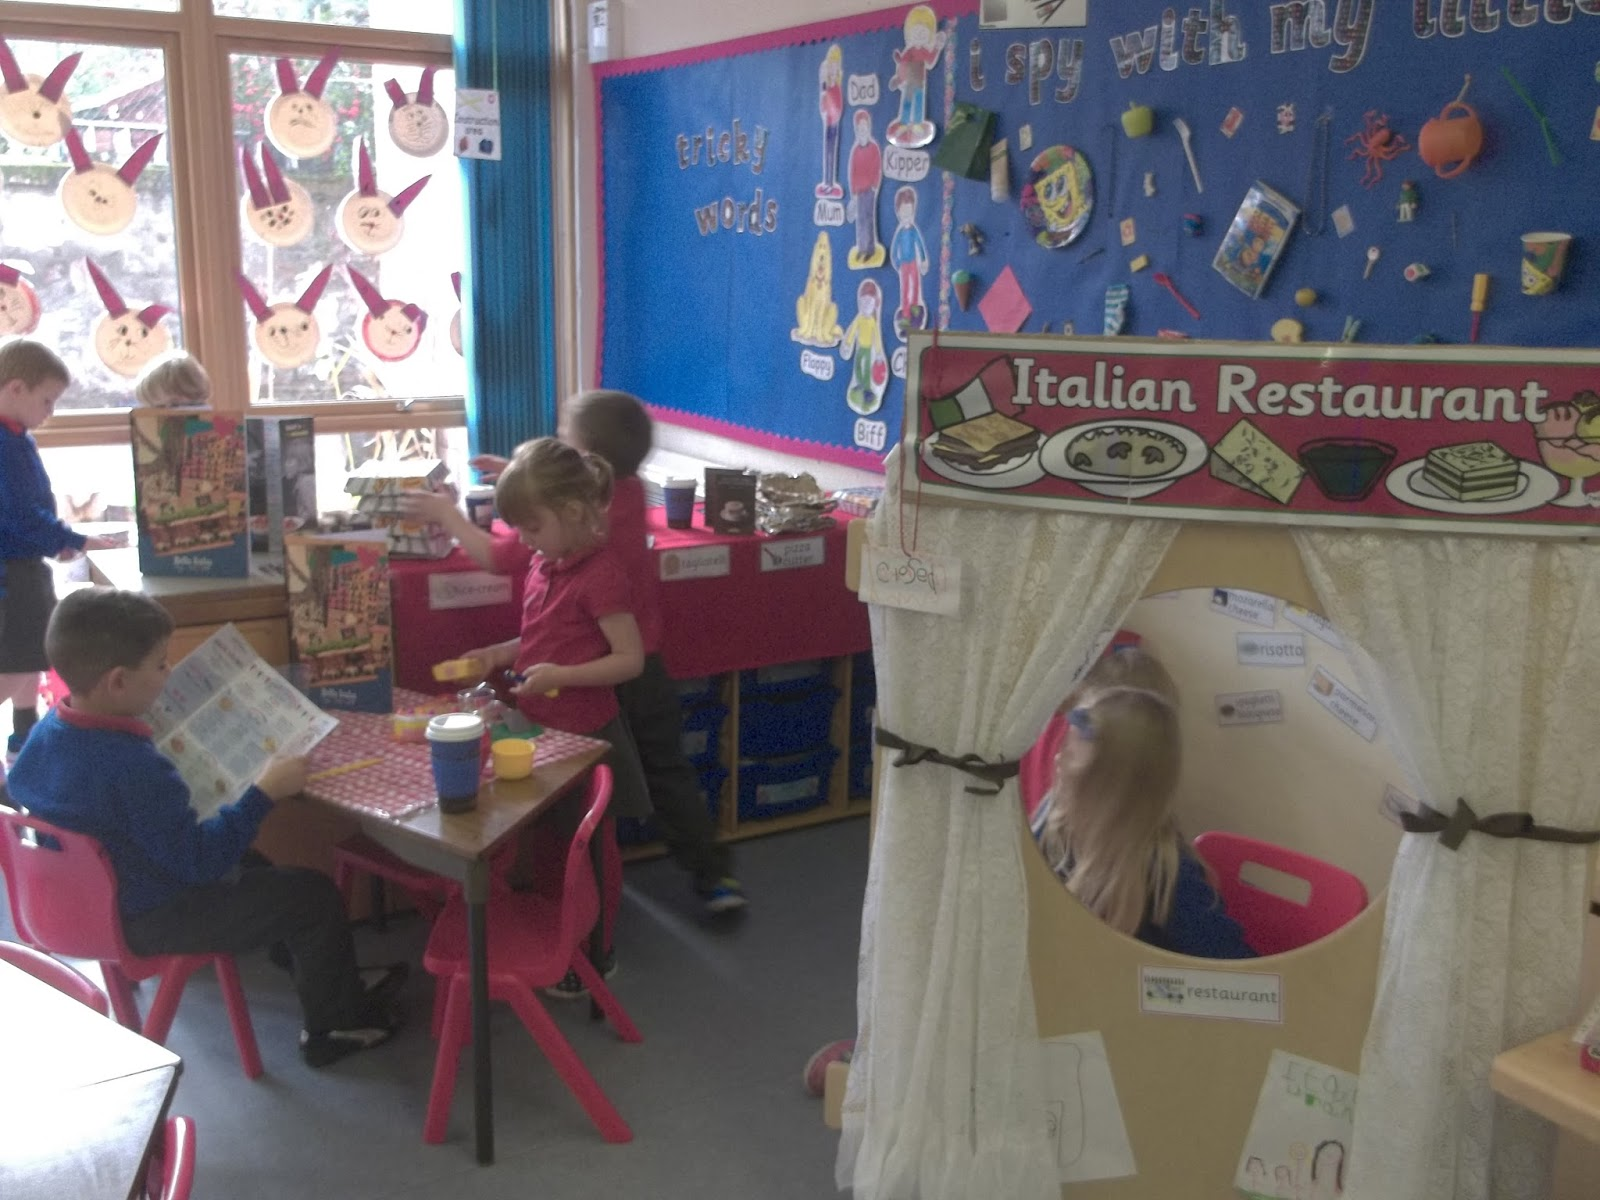 Italian Restaurant Logo With Flag: European Day Of Languages 2015: Crown Primary School